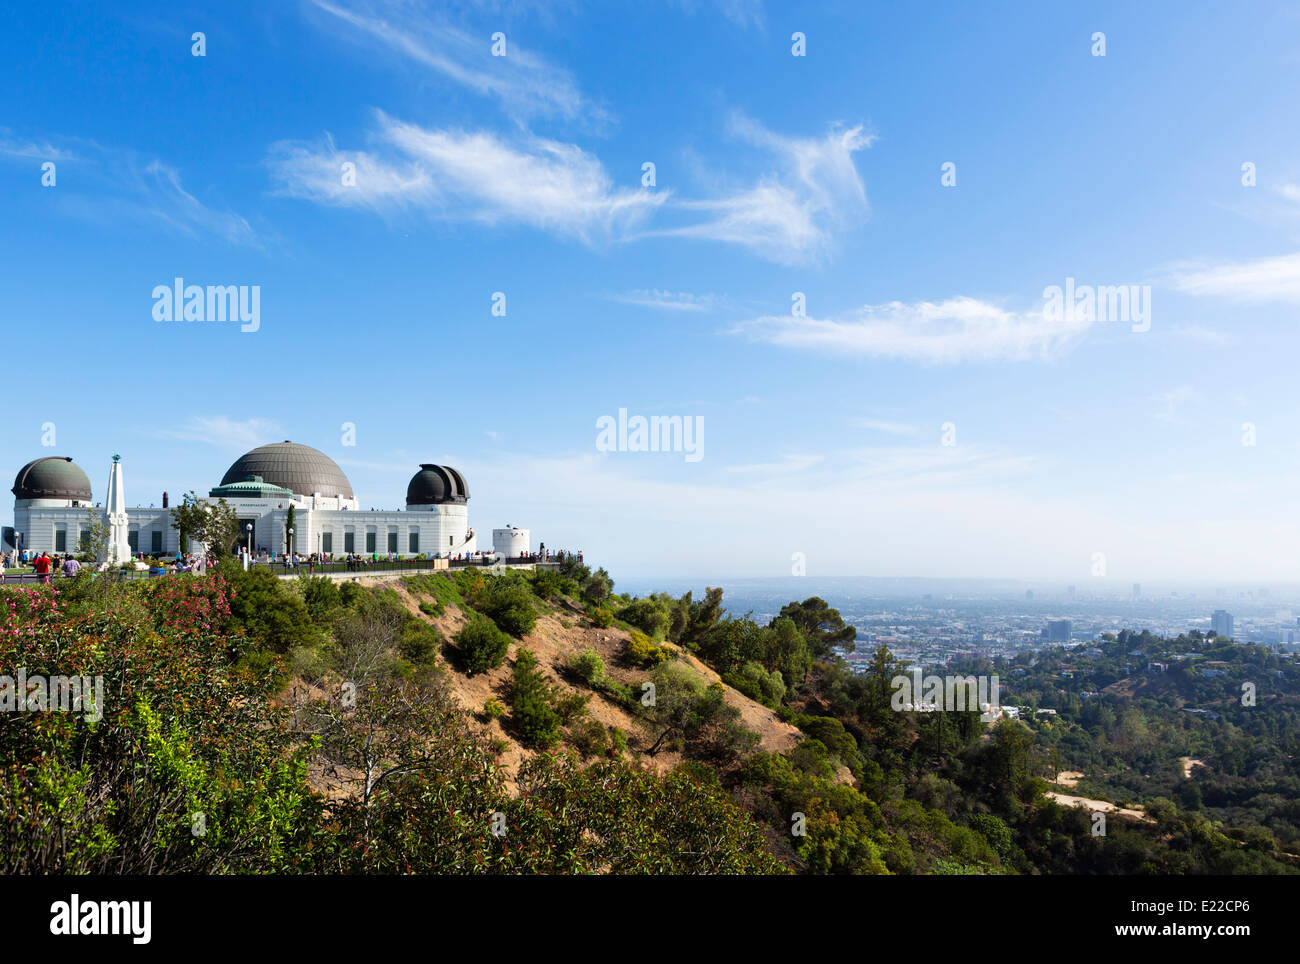 The Griffith Observatory on Mount Hollywood overlooking the city of LA, Griffith Park, Los Angeles, California, - Stock Image